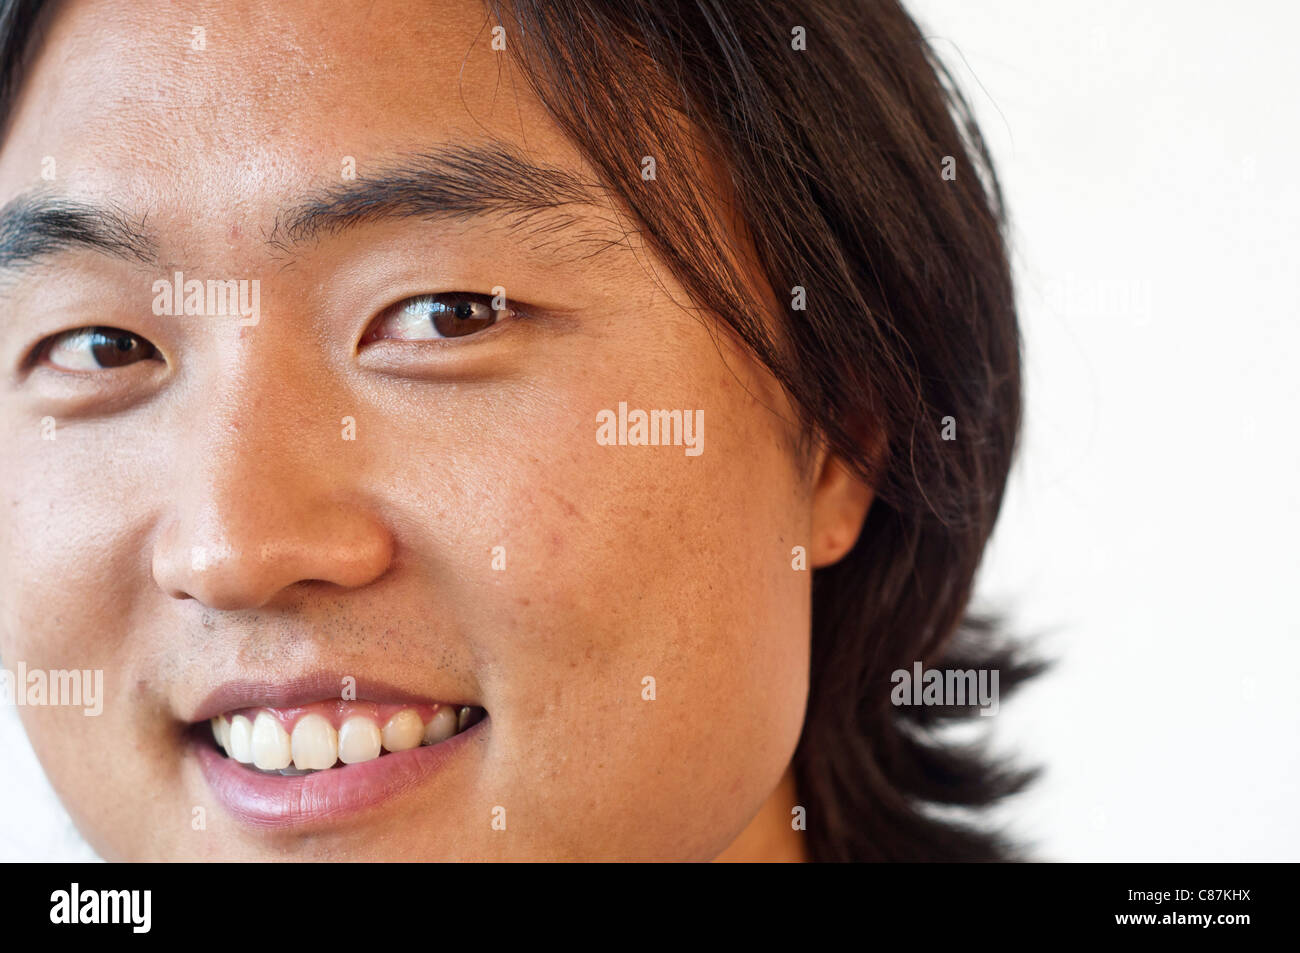 Asian young man portrait-No negative usage allowed - Stock Image